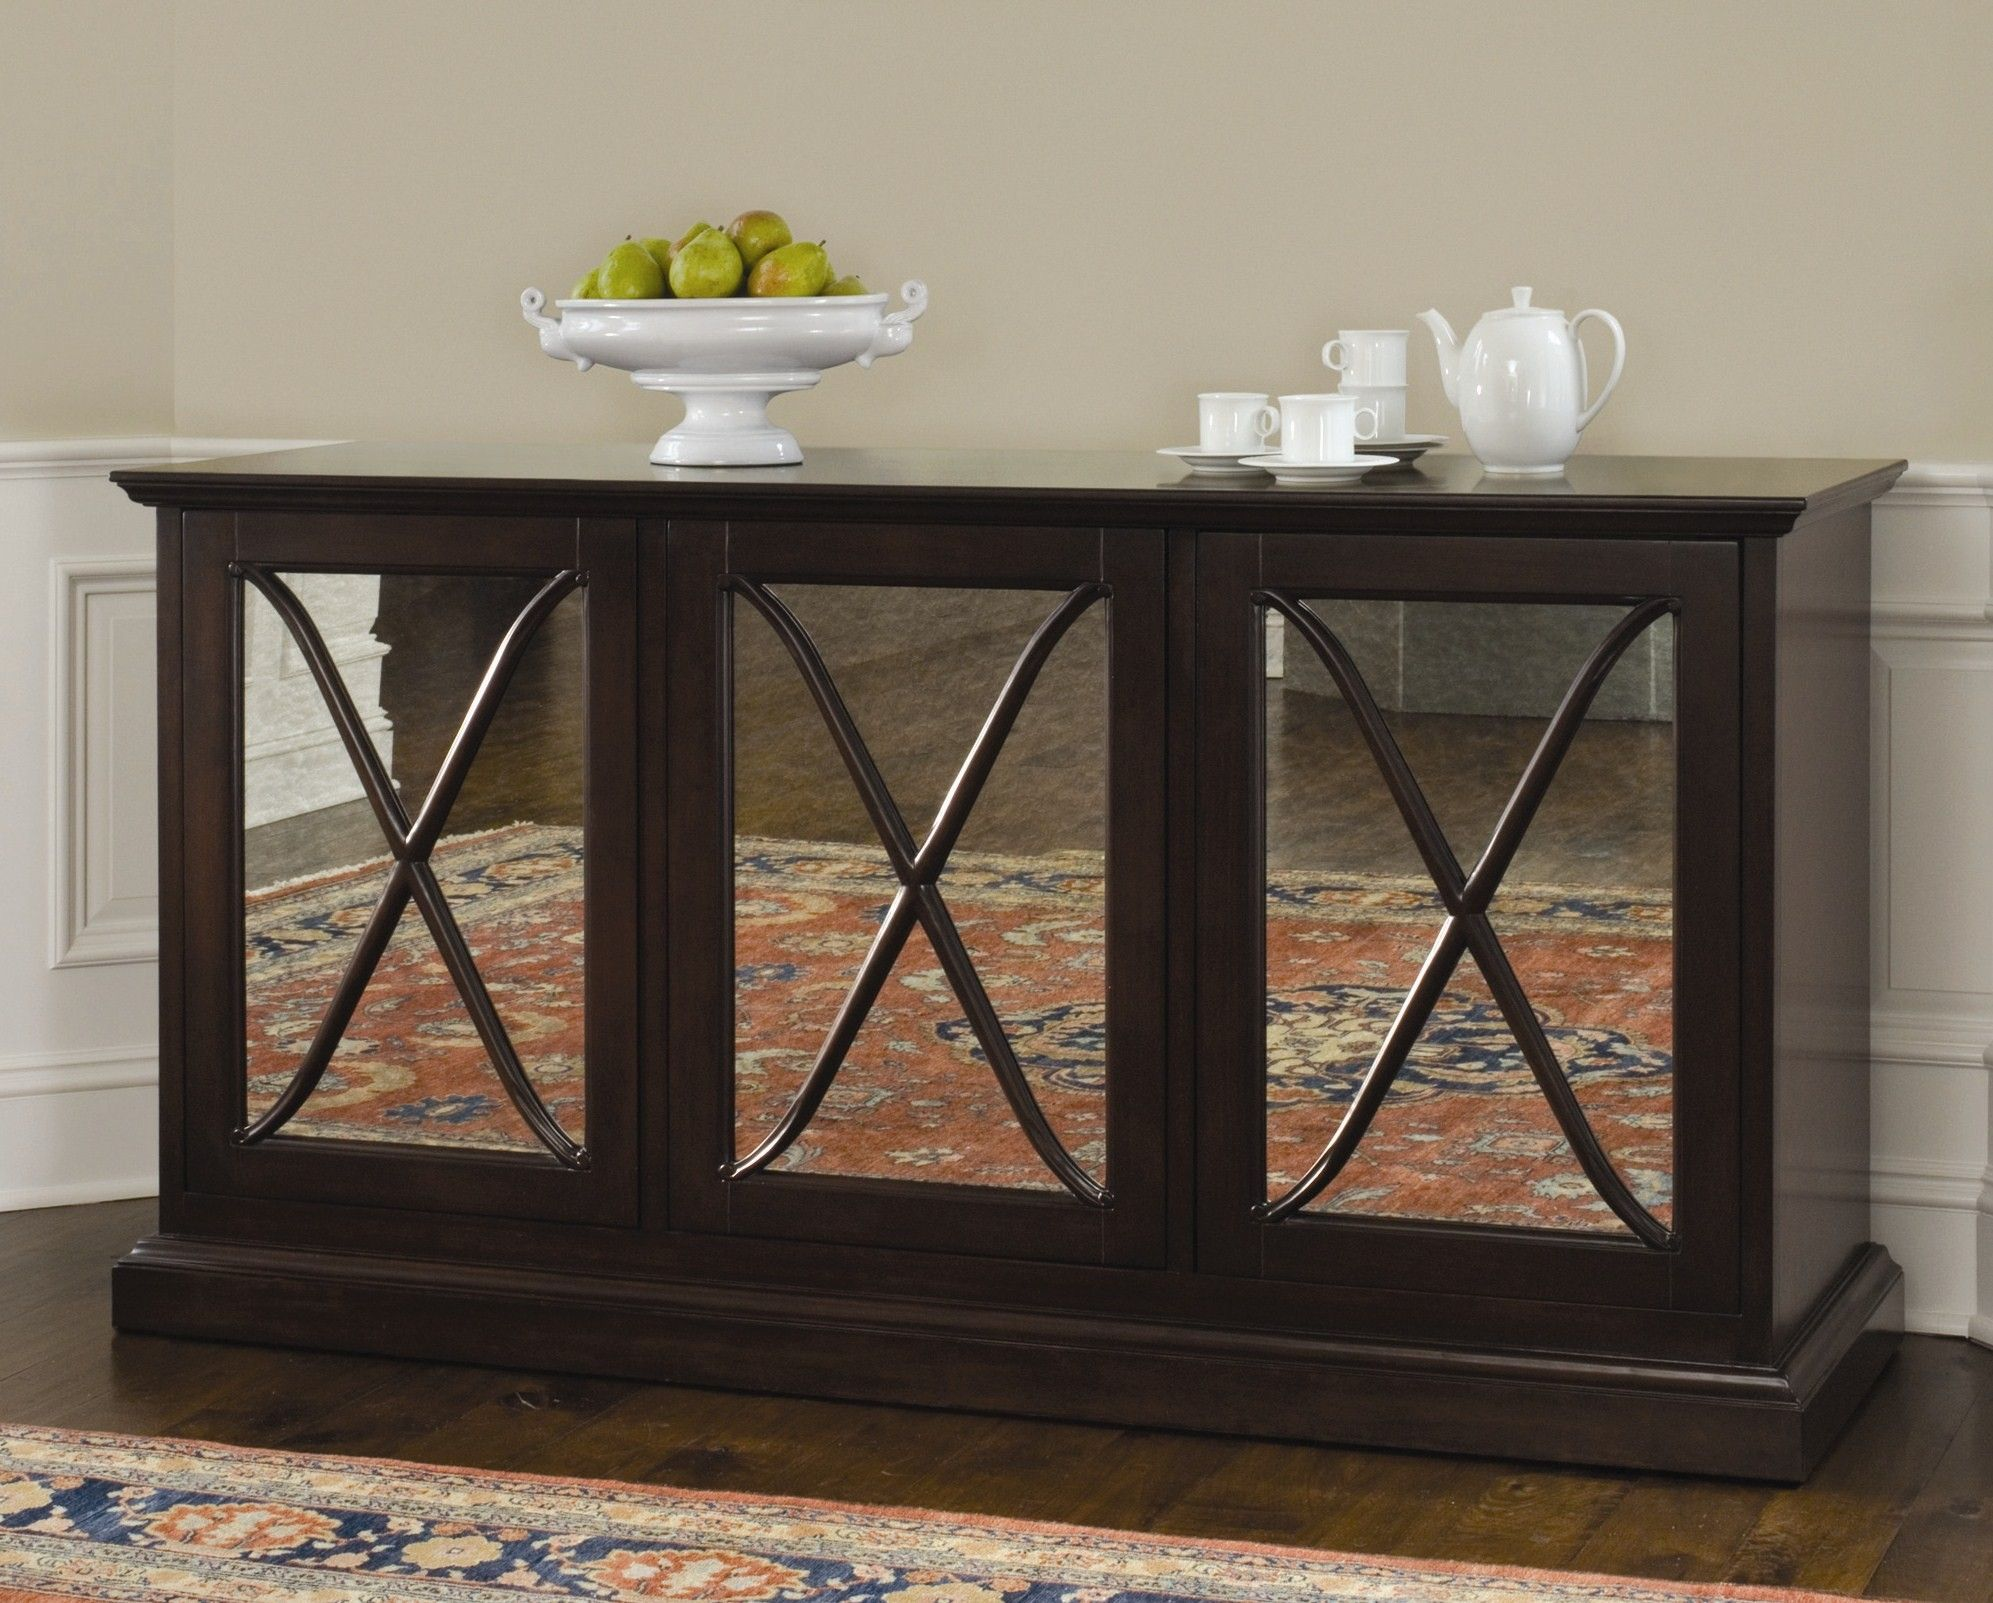 Luxury Mirrored Modern Buffet Table With Triple Door Added Dark Brown  Painted Also Modern Living Rugs. Luxury Mirrored Modern Buffet Table With Triple Door Added Dark